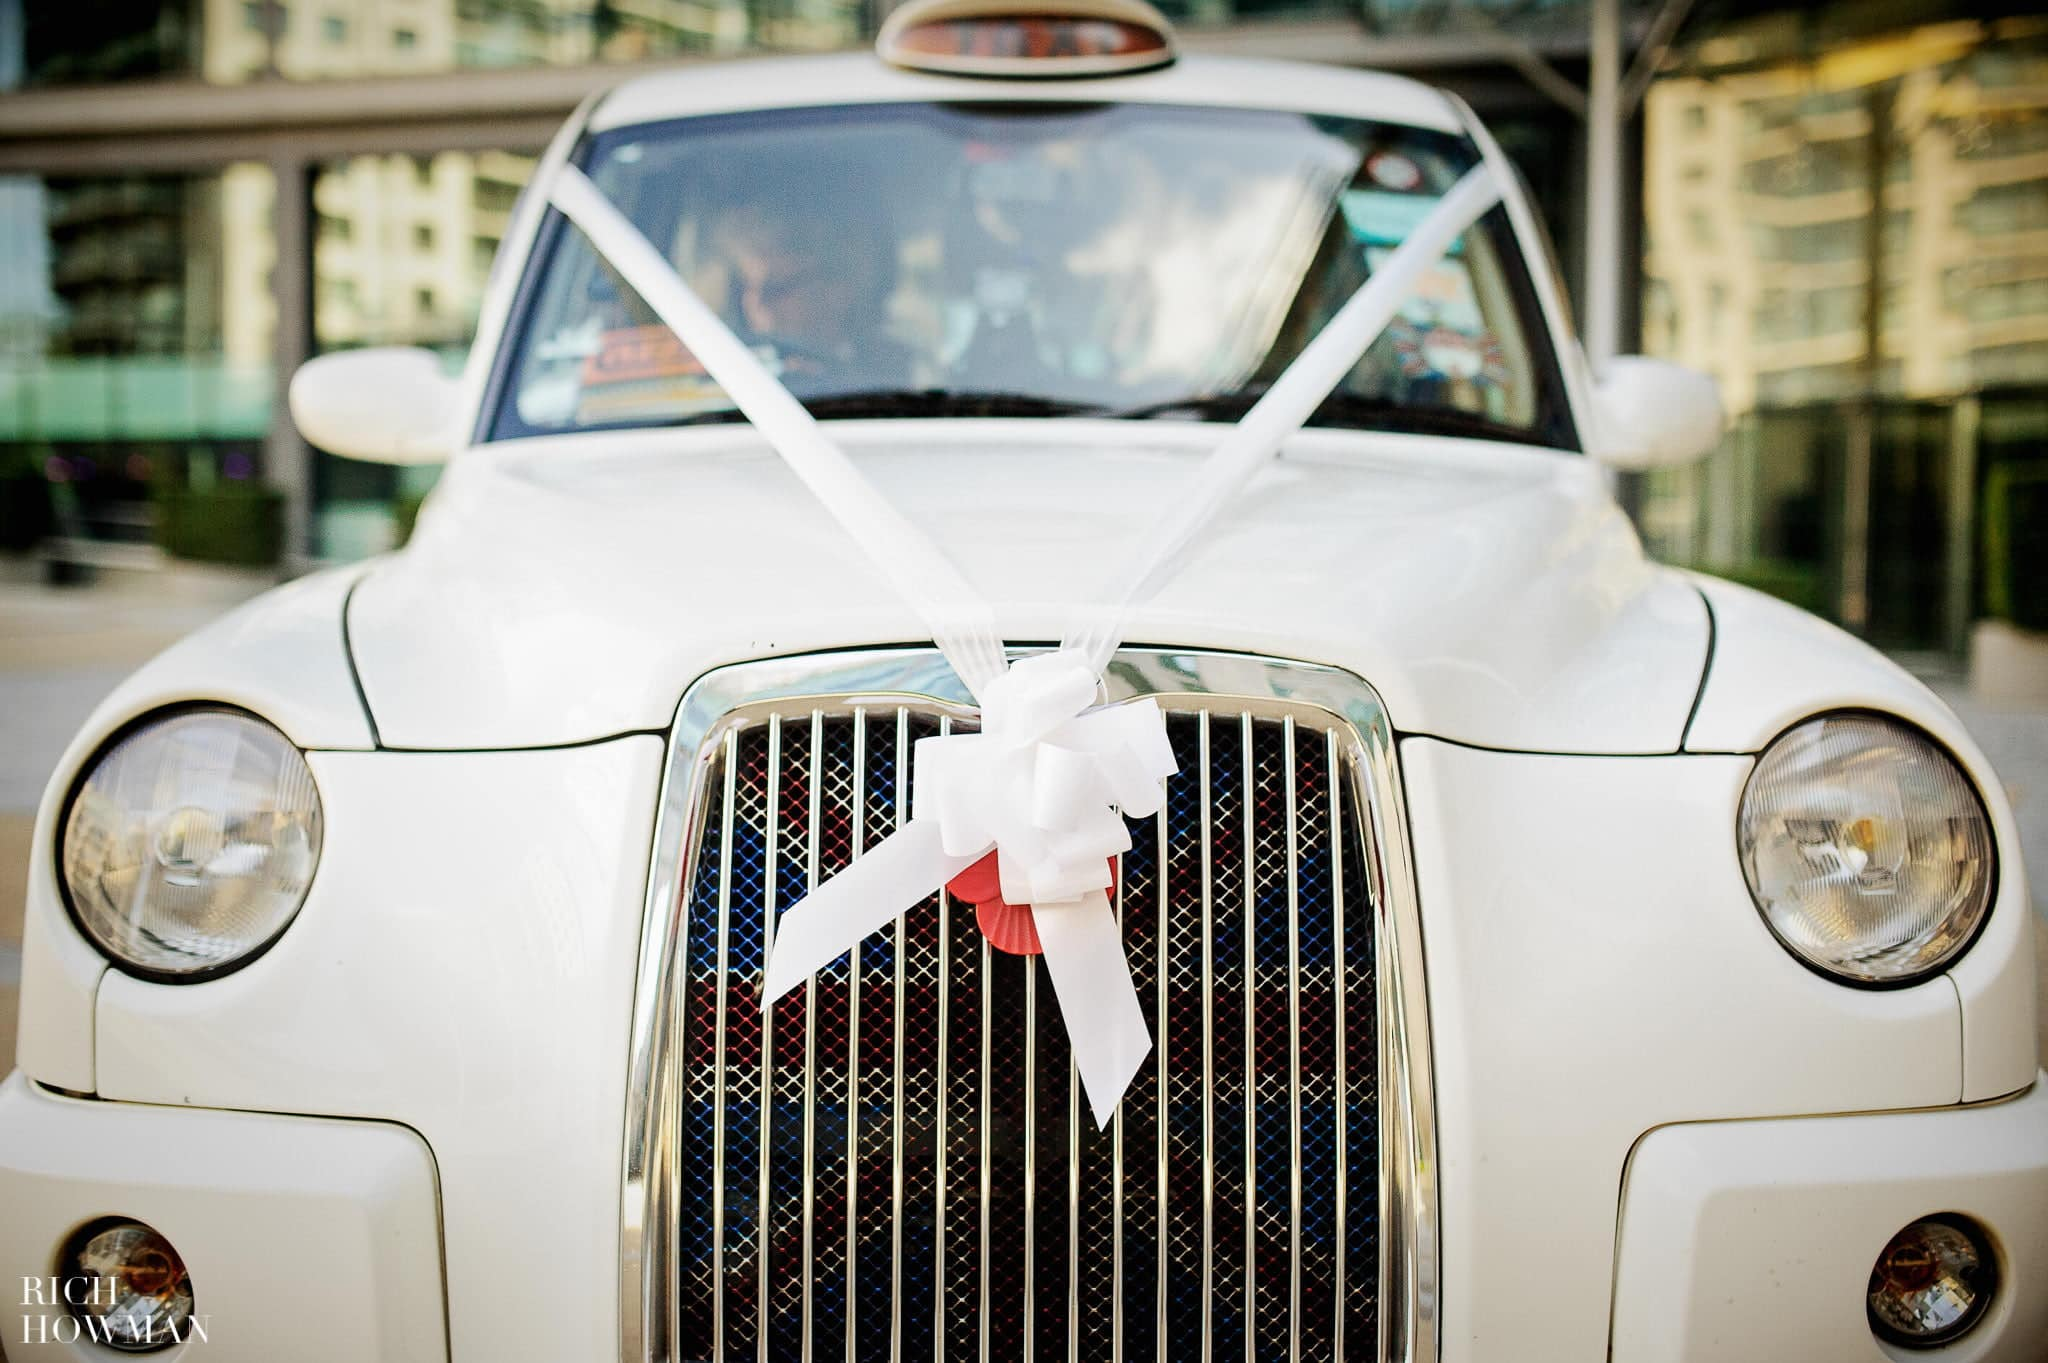 Notting Hill Wedding | Wedding Photographer London - Rich Howman 39